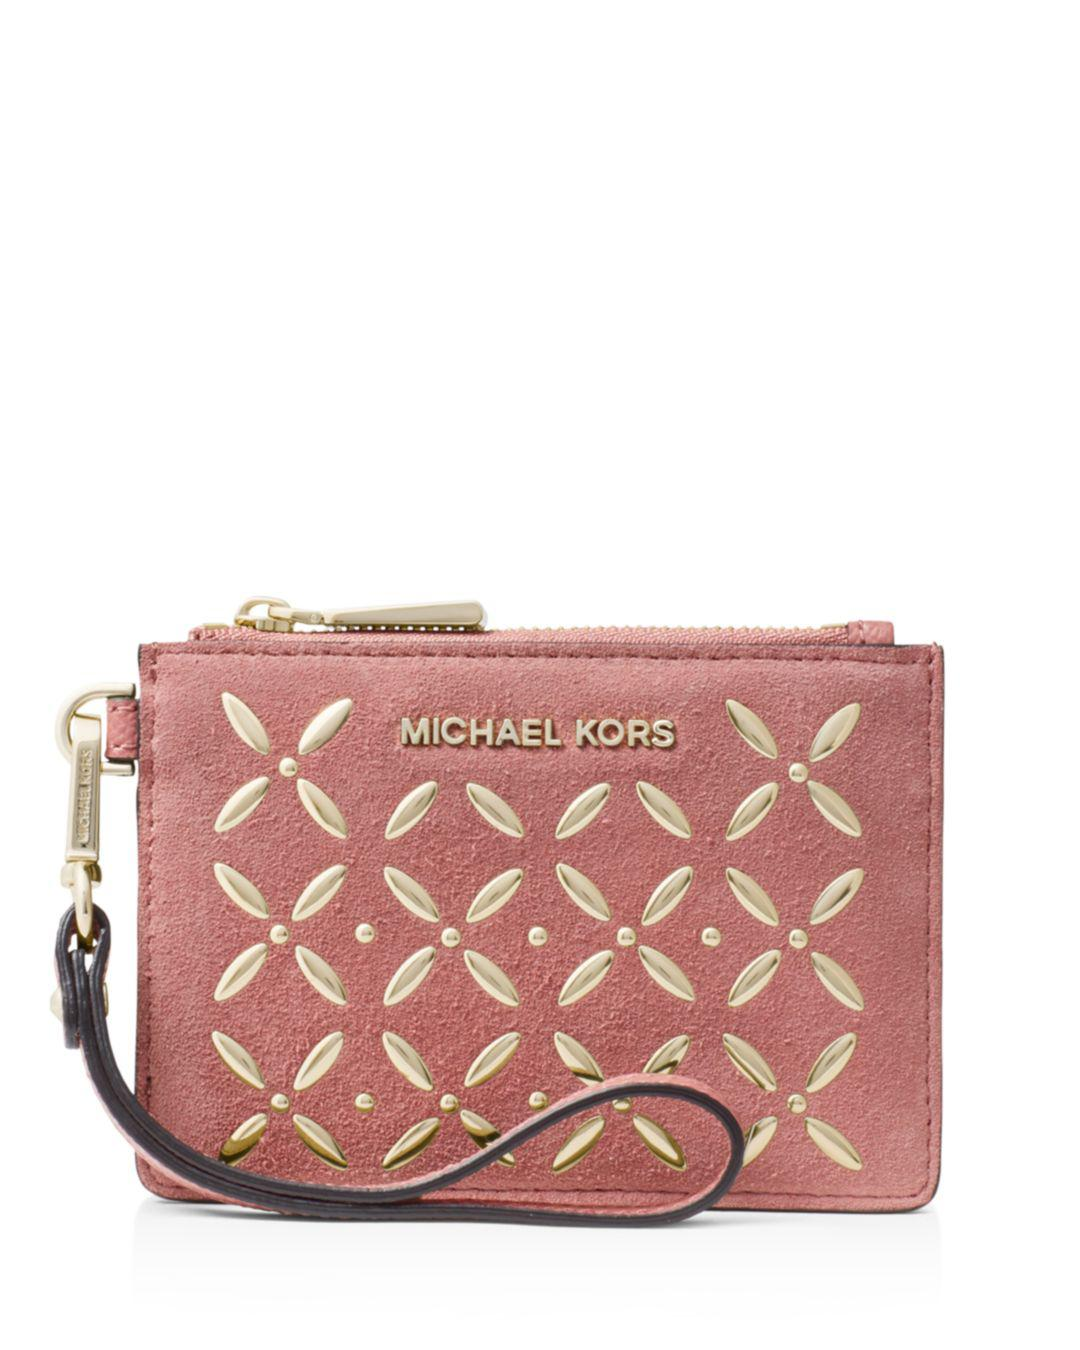 cfc8be87101b MICHAEL Michael Kors Hotfix Small Coin Purse in Pink - Lyst